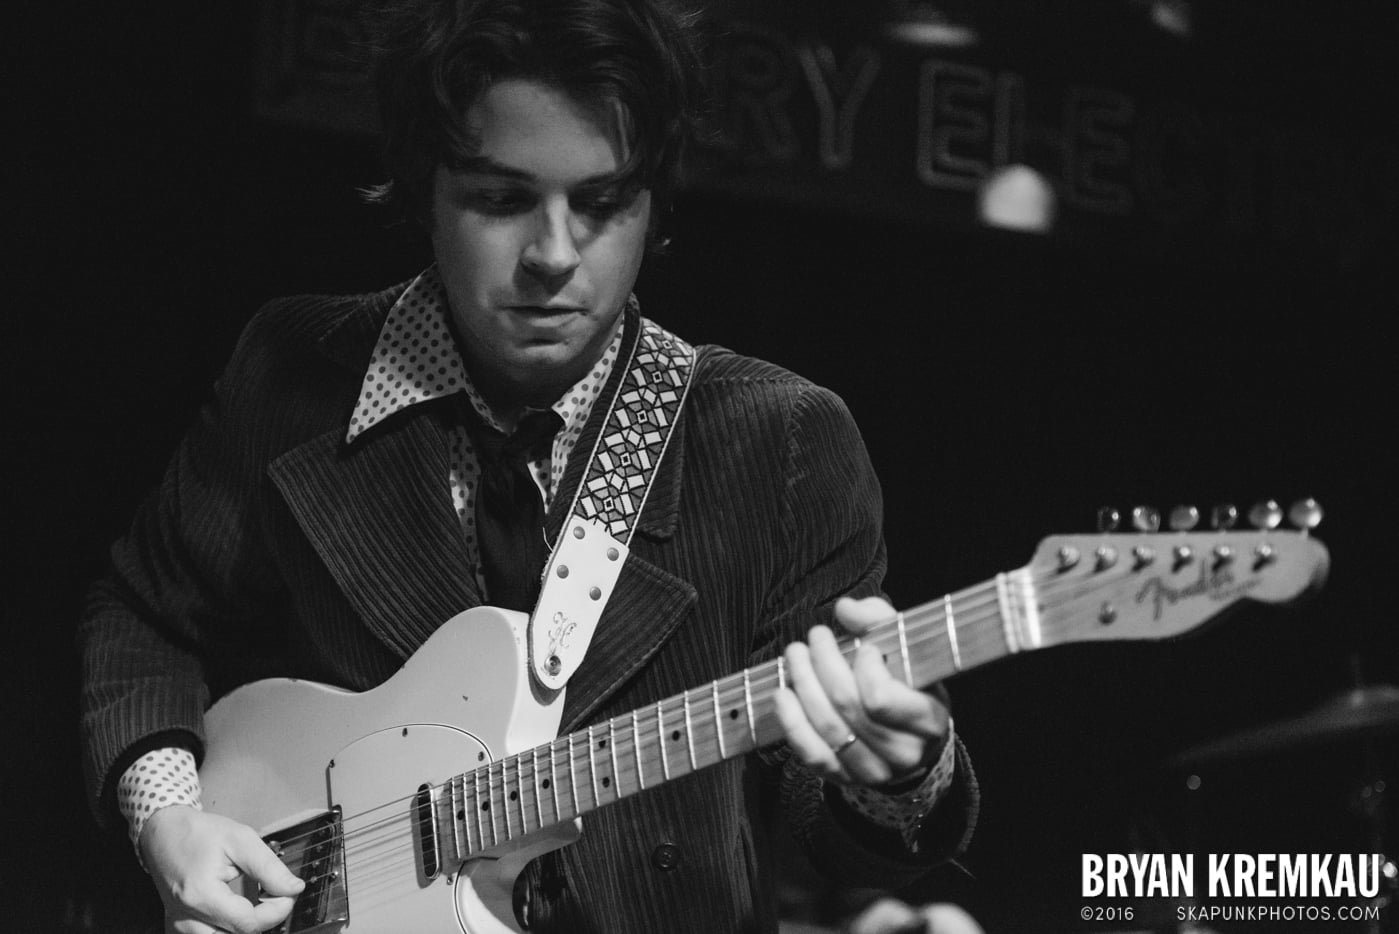 Trapper Schoepp & The Shades @ Bowery Electric, NYC - 11.20.14 (39)